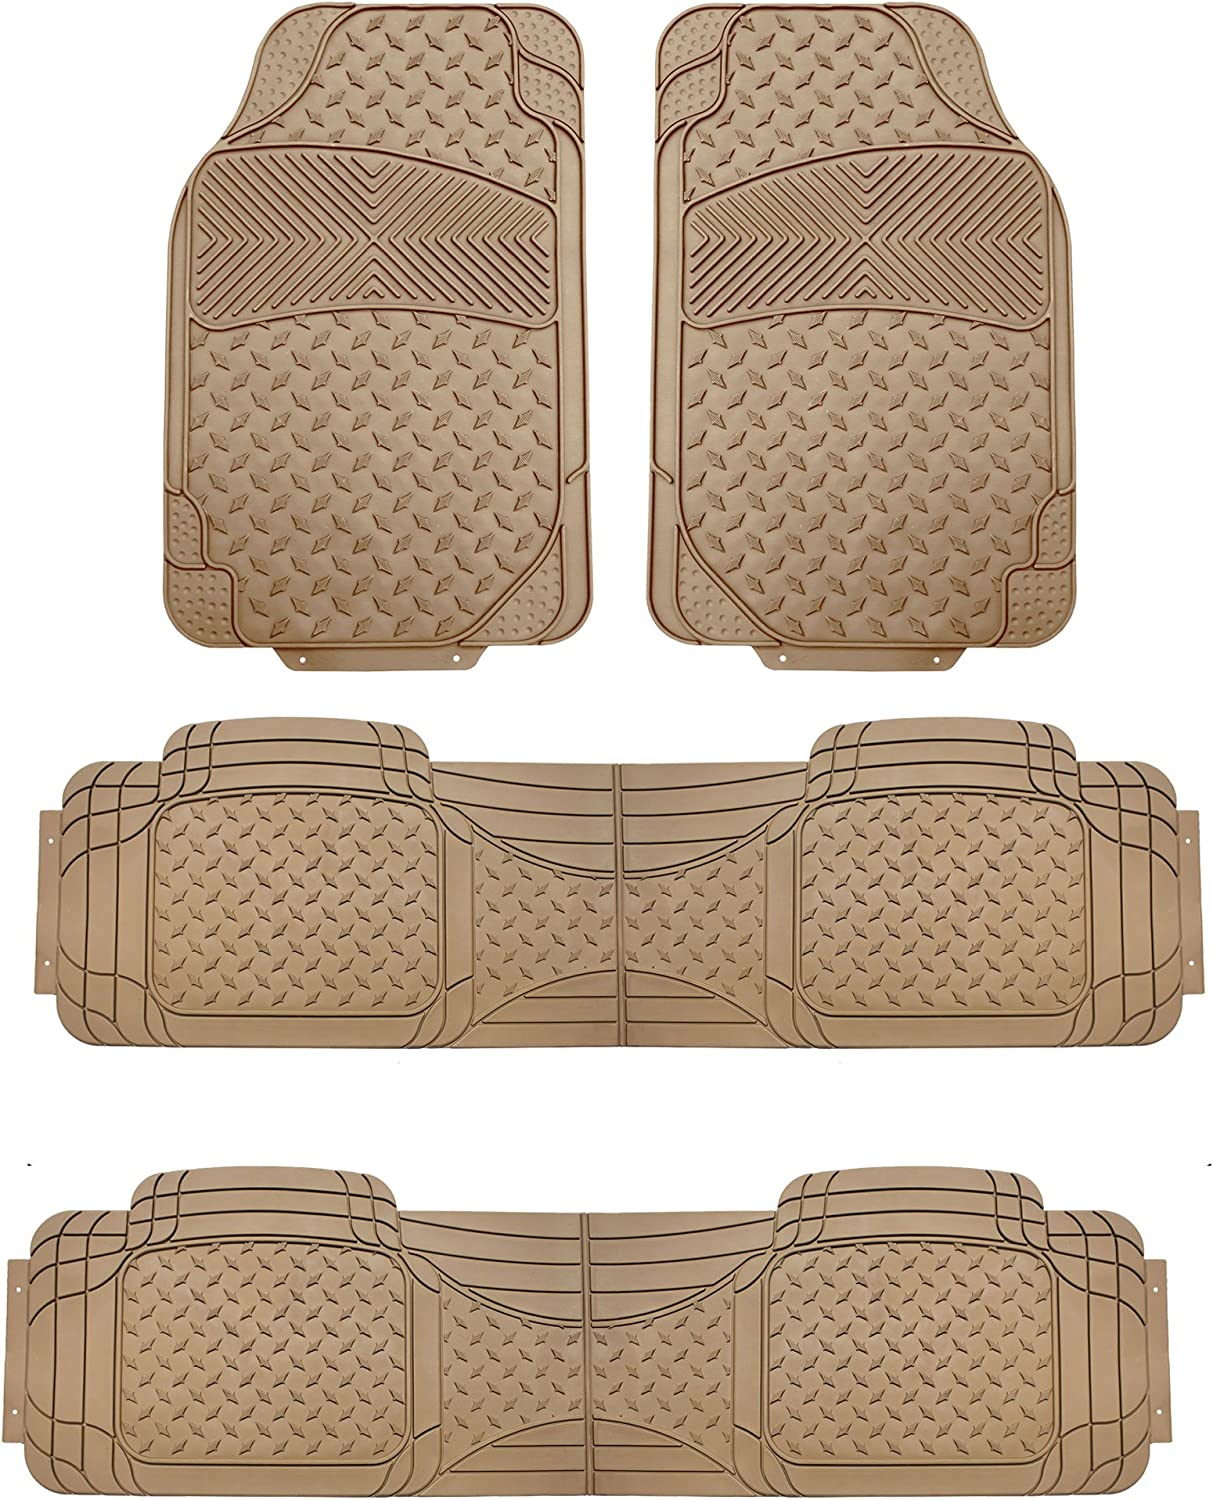 FH Group F11307 Semi-Custom Trimmable Vinyl Floor Mats Three Row Set, Beige Color- Universal Fit for Cars Trucks and SUVs